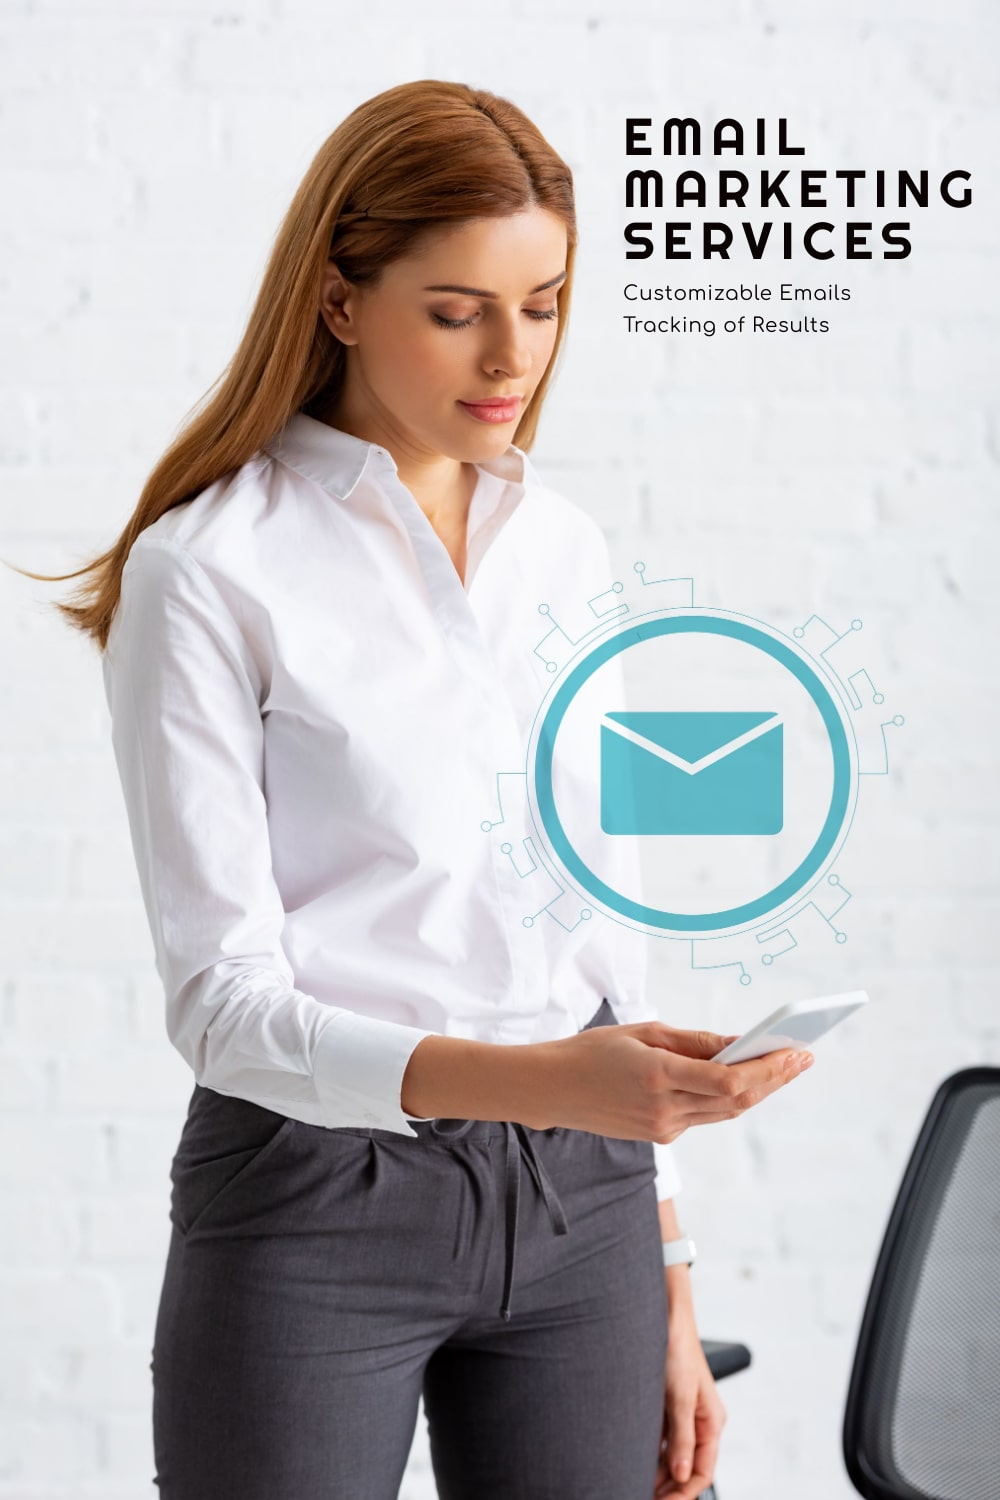 FEATURES OF EMAIL MARKETING SERVICES